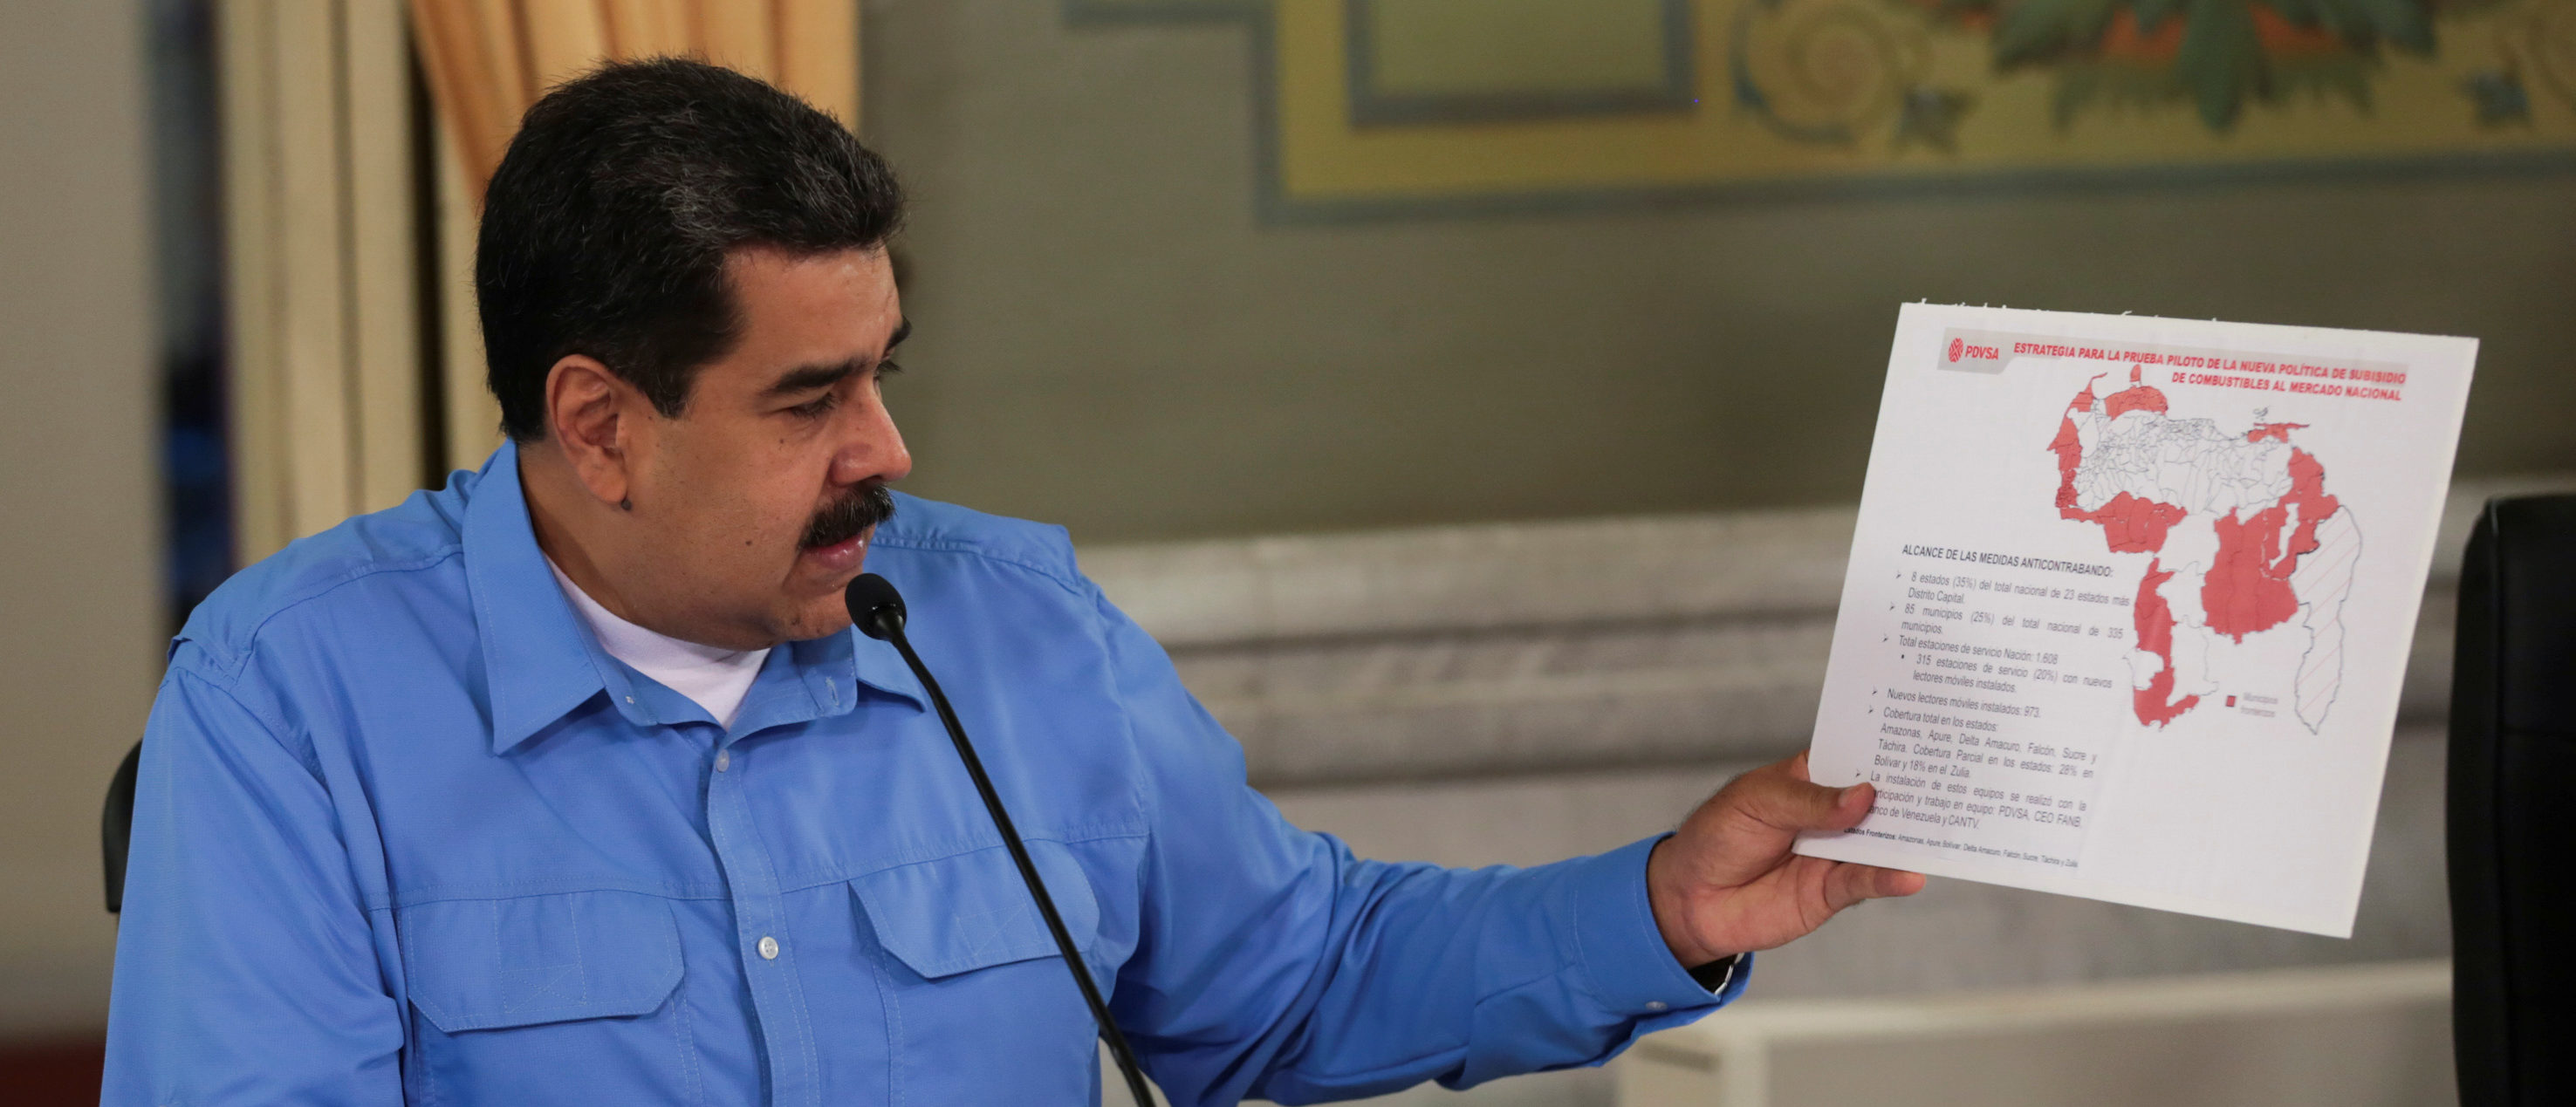 Venezuela's President Nicolas Maduro speaks during a meeting with ministers at Miraflores Palace in Caracas, Venezuela September 3, 2018. Miraflores Palace/Handout via REUTERS ATTENTION EDITORS - THIS PICTURE WAS PROVIDED BY A THIRD PARTY. - RC1CF3471950